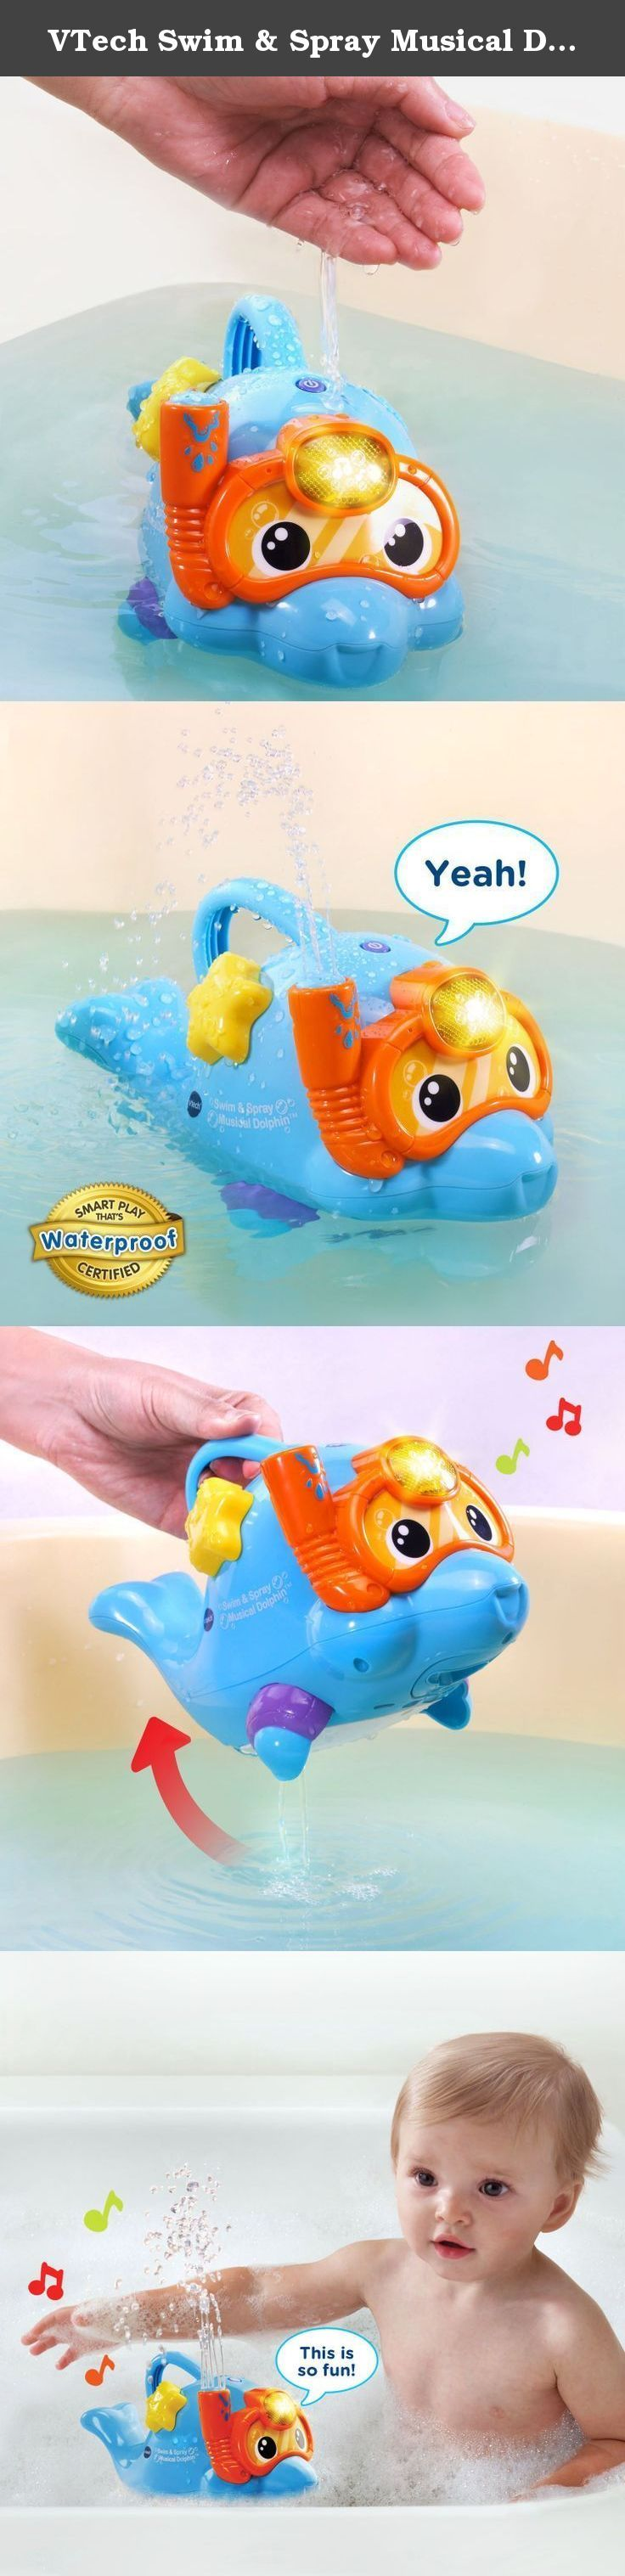 VTech Swim & Spray Musical Dolphin. Dive and play with the Swim and Spray Musical Dolphin by VTech. Pour water over the friendly little dolphin, and he'll spray water from his snorkel. Water sprays from this bath toy in different patterns and intensities based on the music for fun tactile and visual stimulation. Twist the starfish on his side to build fine motor skills while hearing more than 55 fun sounds, phrases and melodies. The dolphin's face mask also lights up and flashes with the...